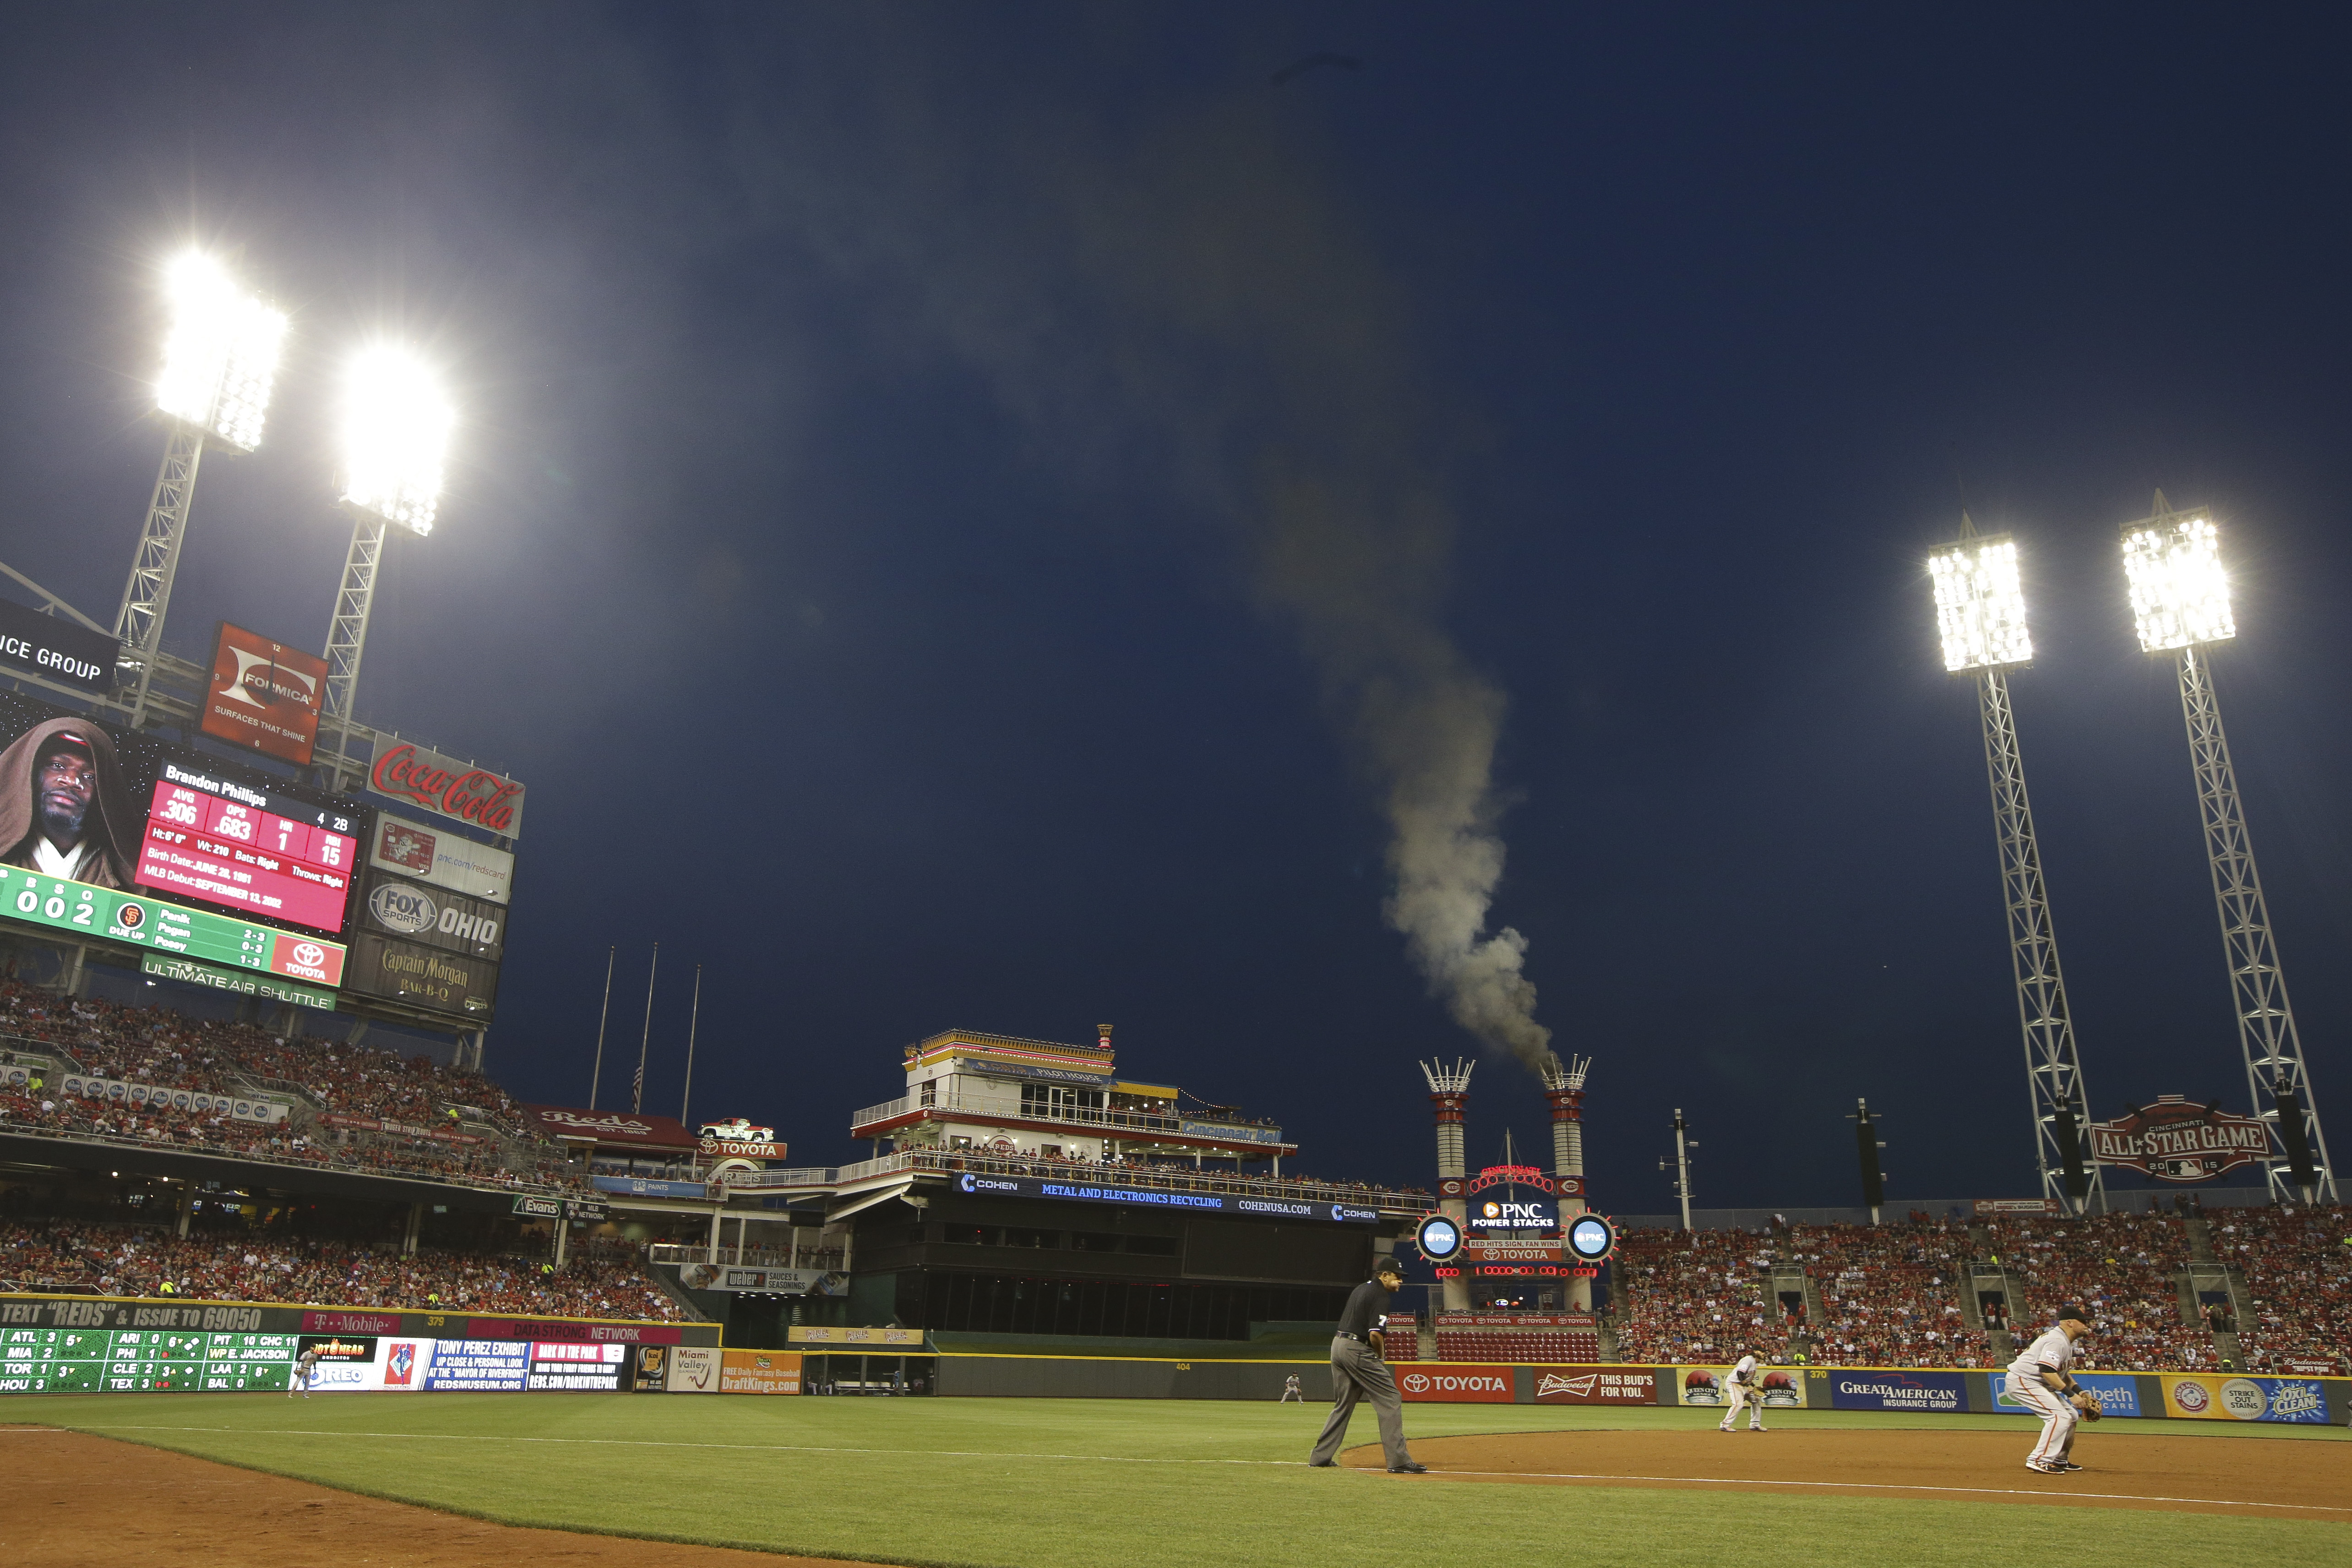 FILE - In this Friday, May 15, 2015, file photo, a fire burns in one of the outfield stacks at Great American Ballpark in the sixth inning of a baseball game between the San Francisco Giants and the Cincinnati Reds, in Cincinnati. Reds officials say the f